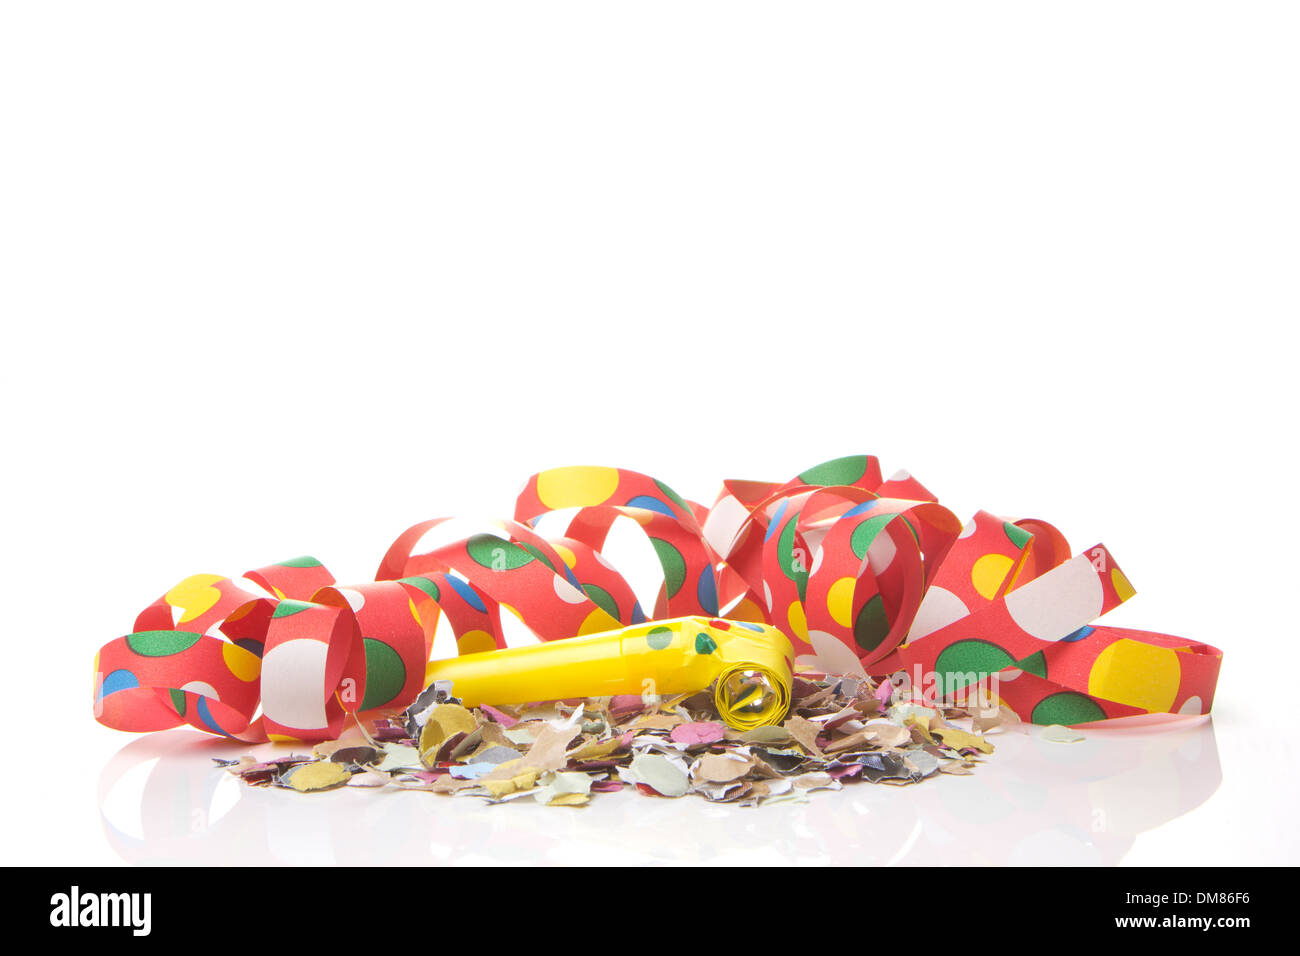 streamers and confetti as decoration for parties, sylvester with white background - Stock Image